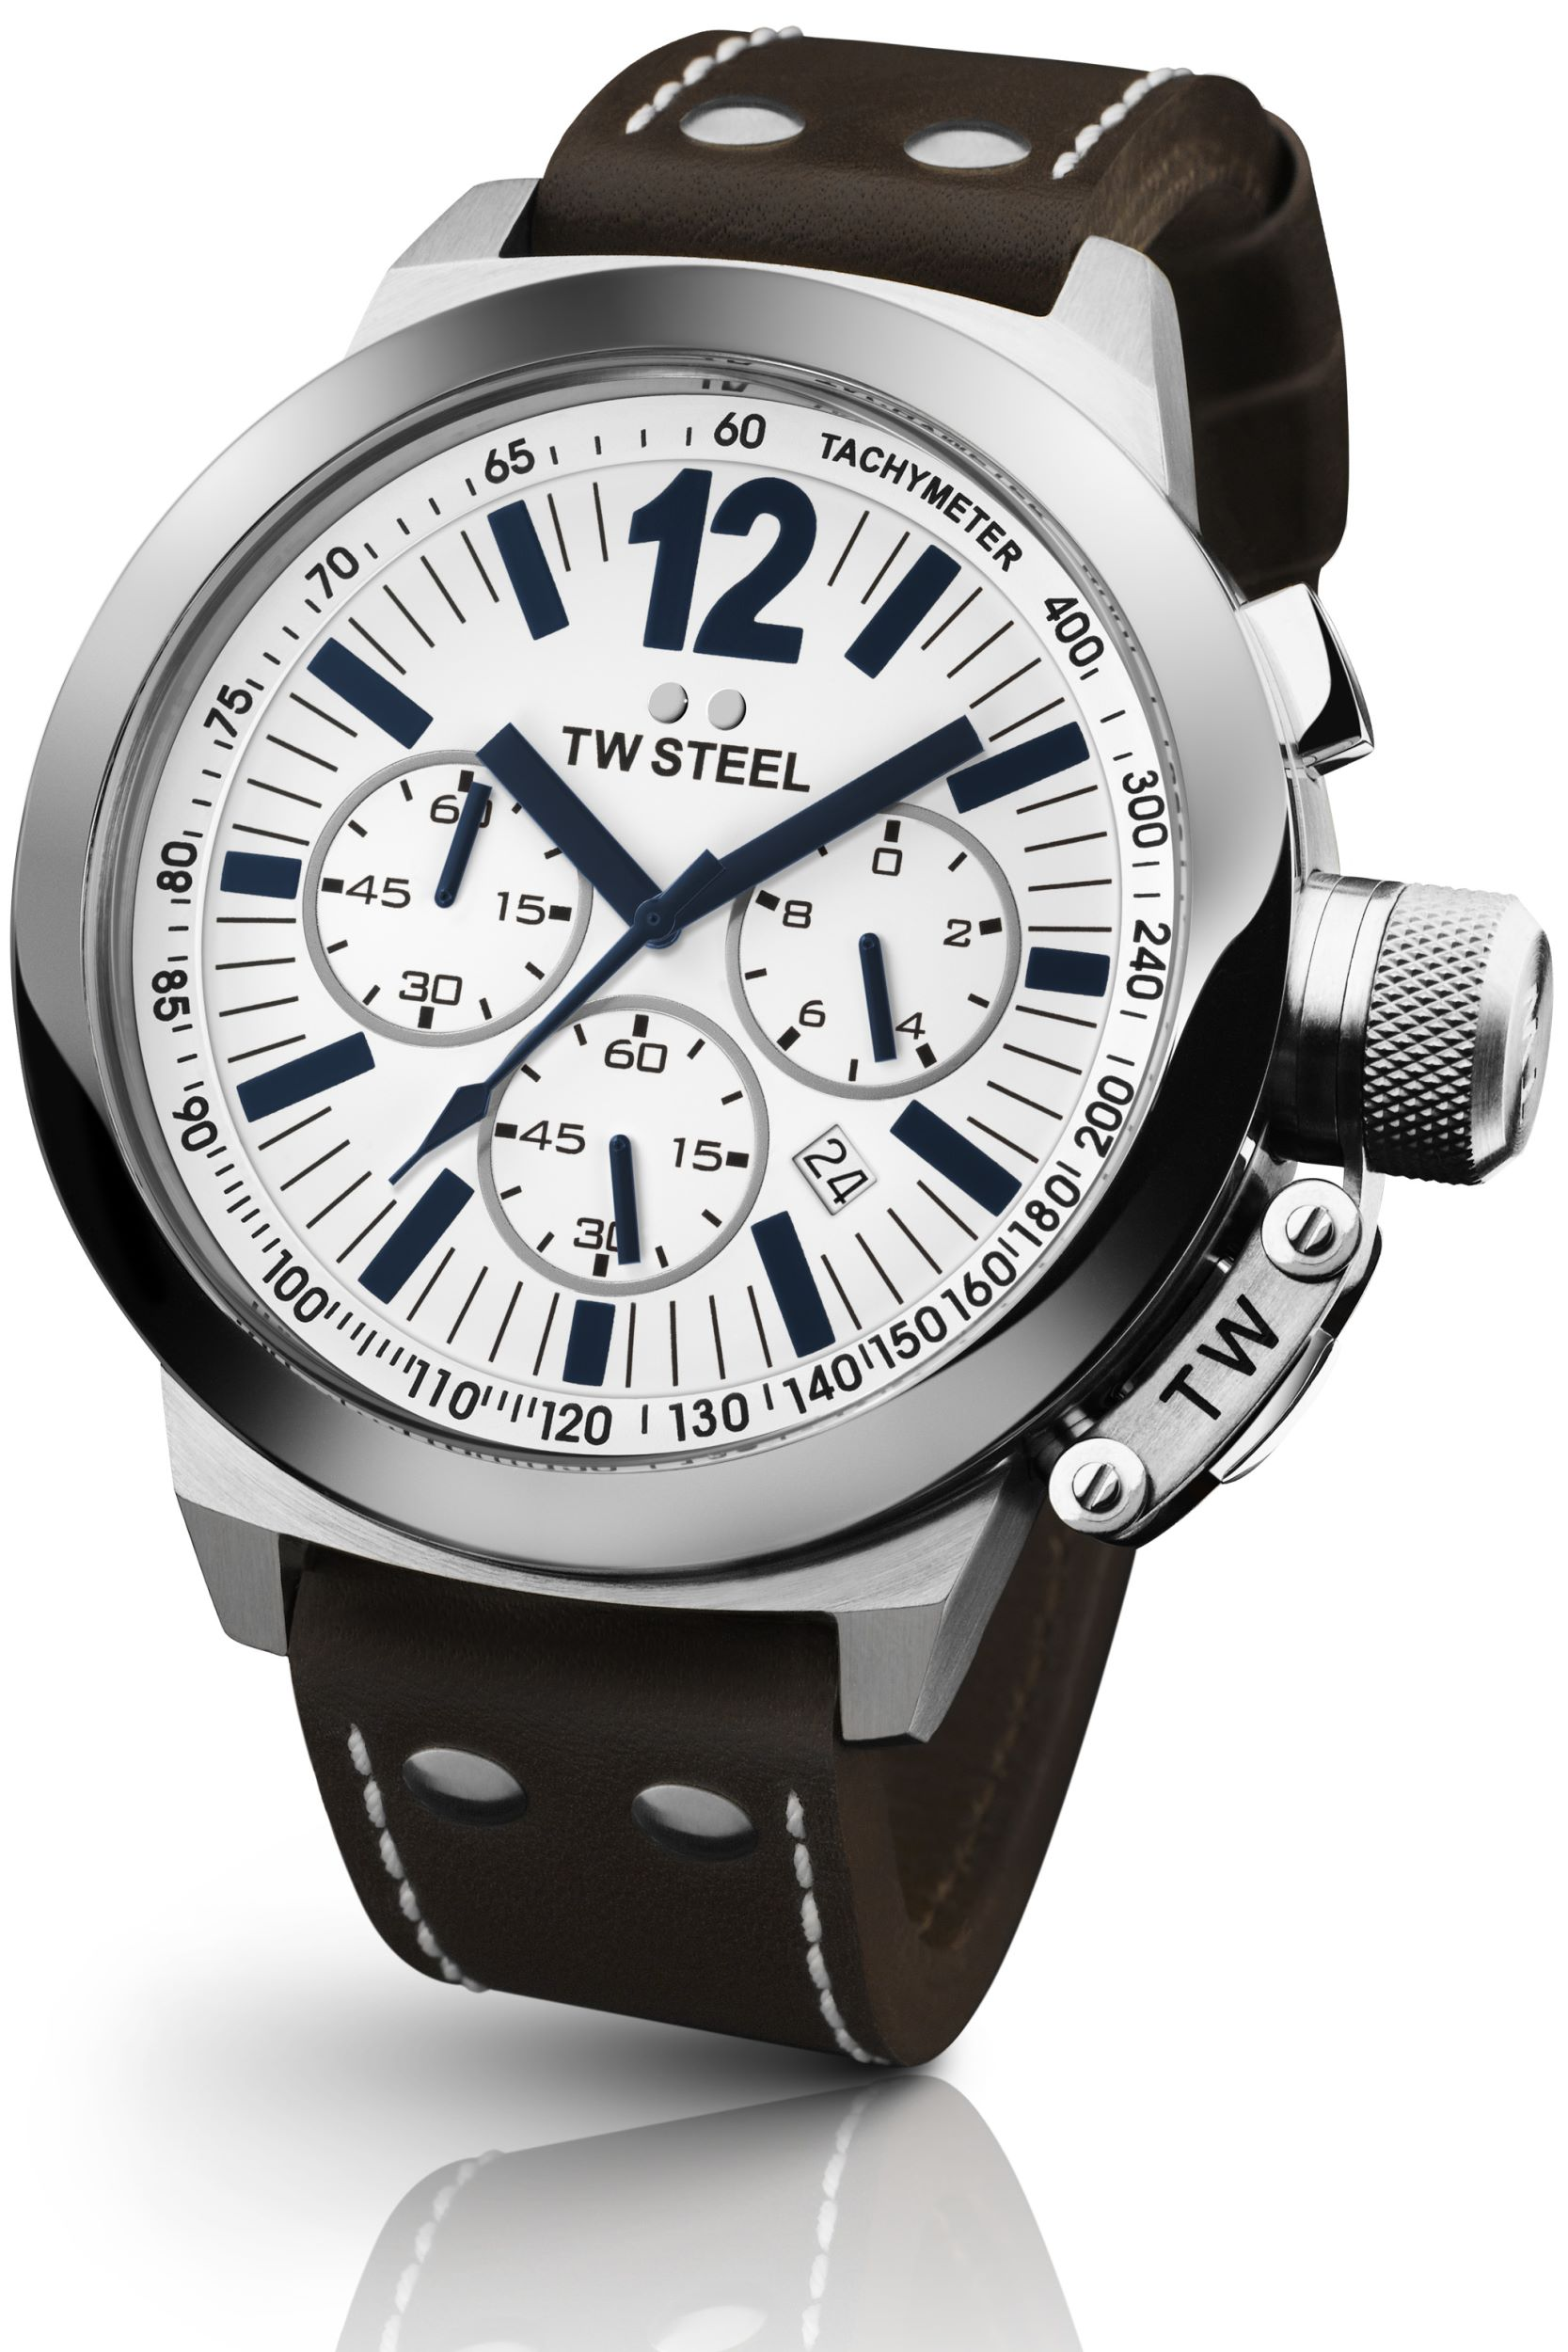 Chronograph TW STEEL -CEO CANTEEN- TWCE1008